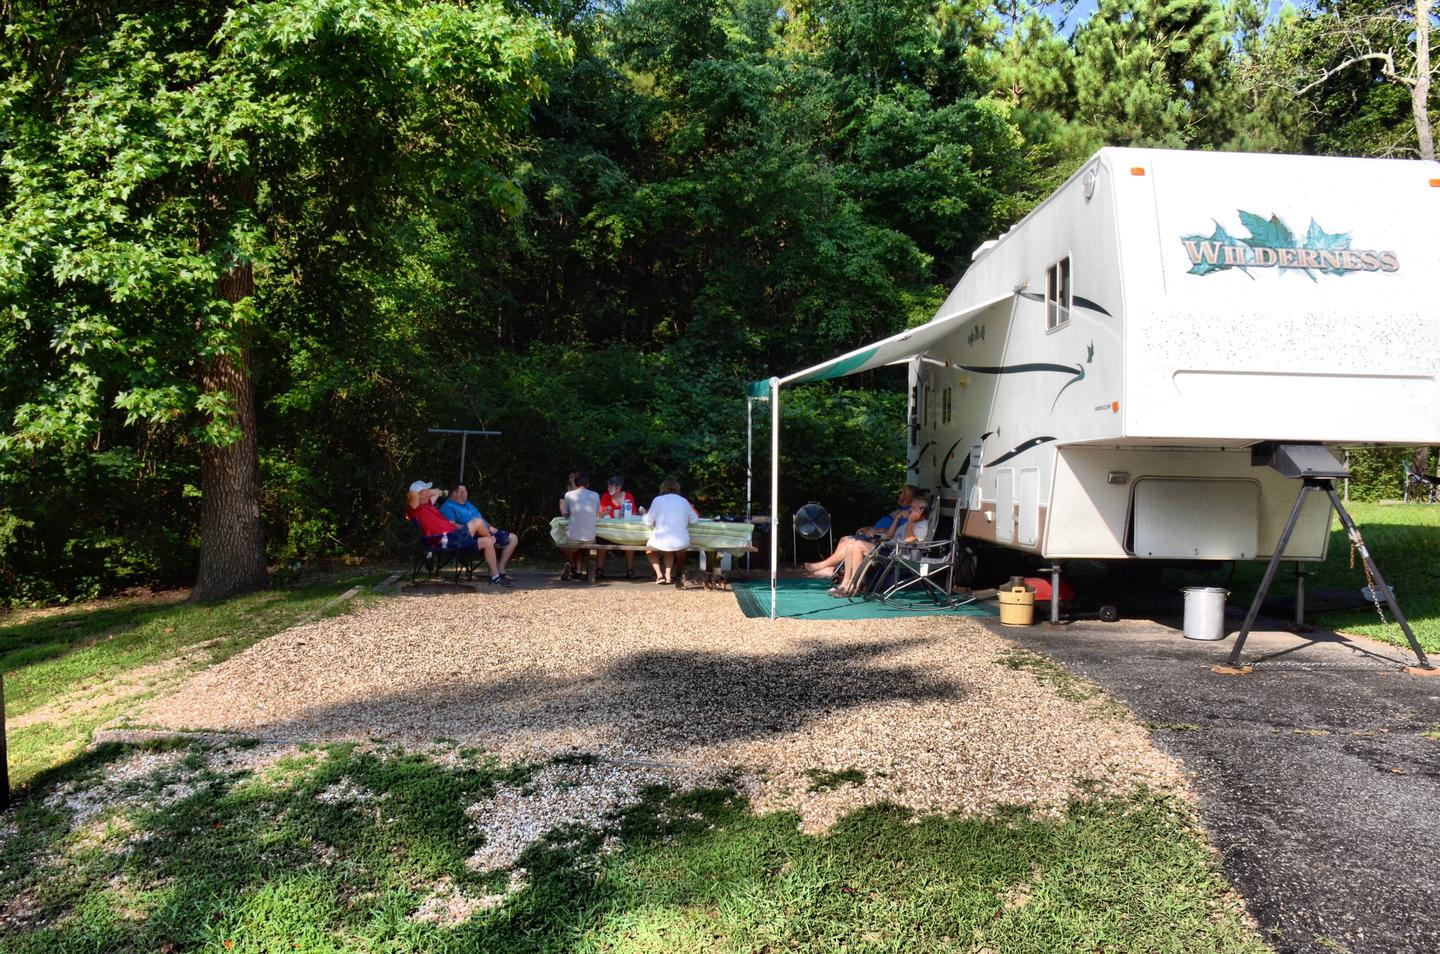 Awning-side clearance, campsite view.Payne Campground, campsite 17.